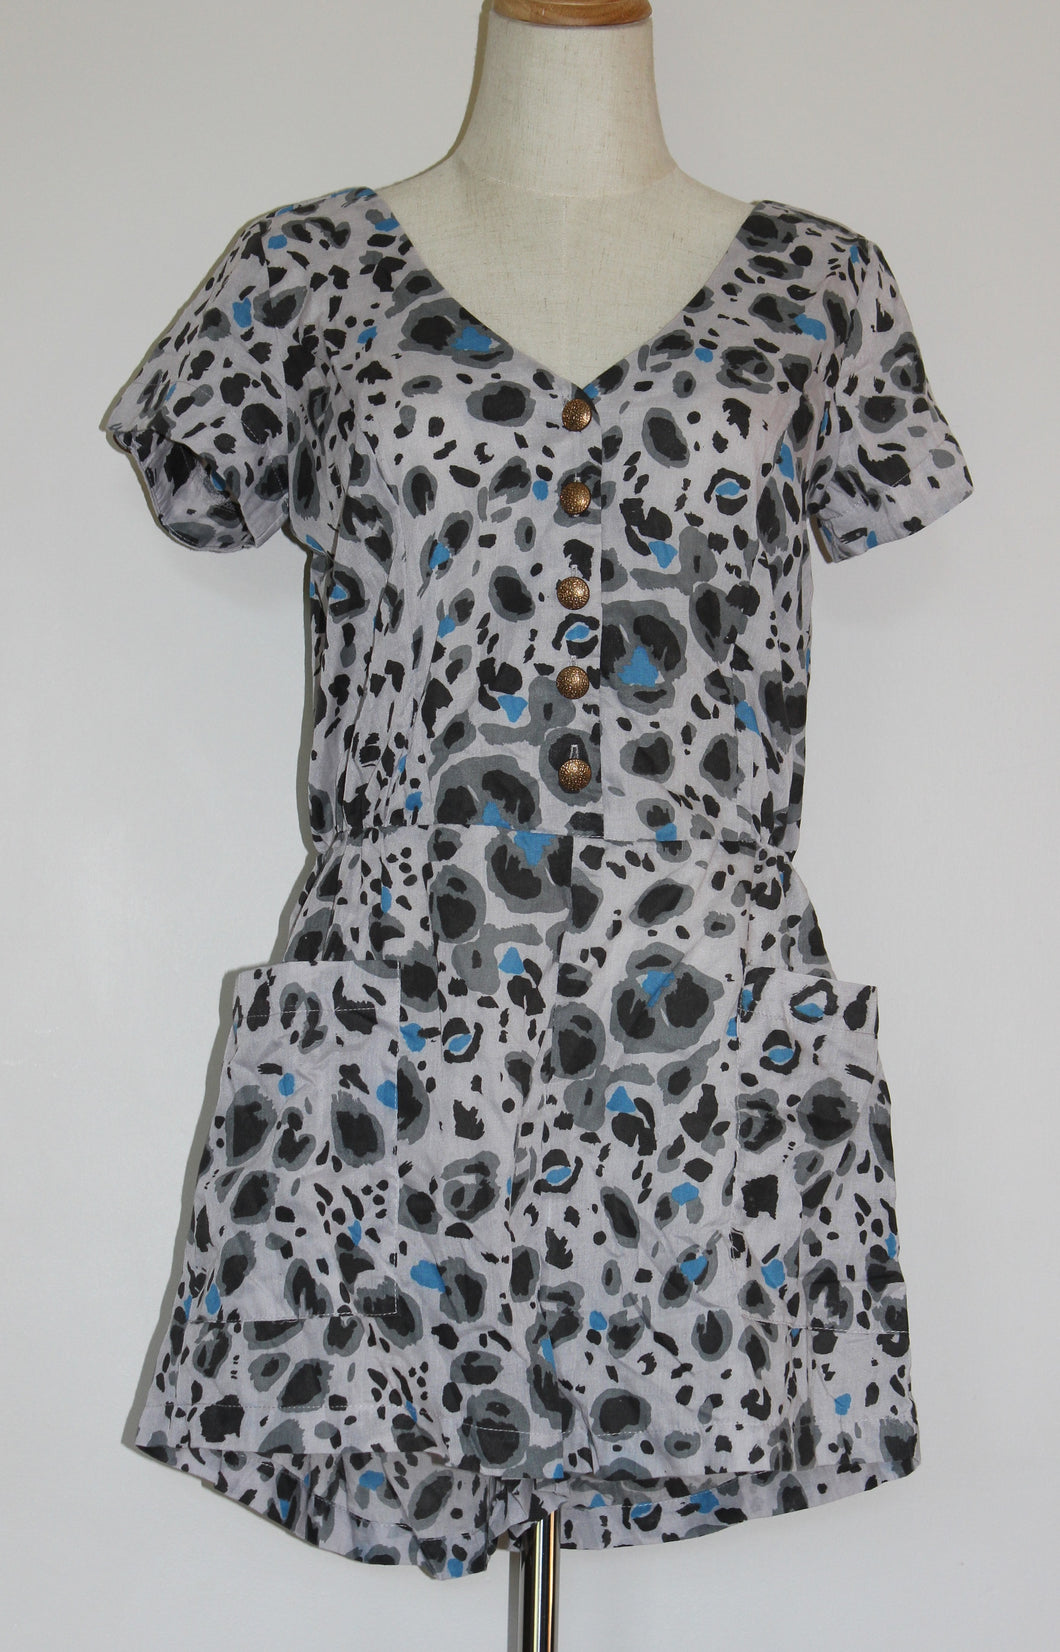 Miss Shop Romper Size 10 *CLEARANCE*